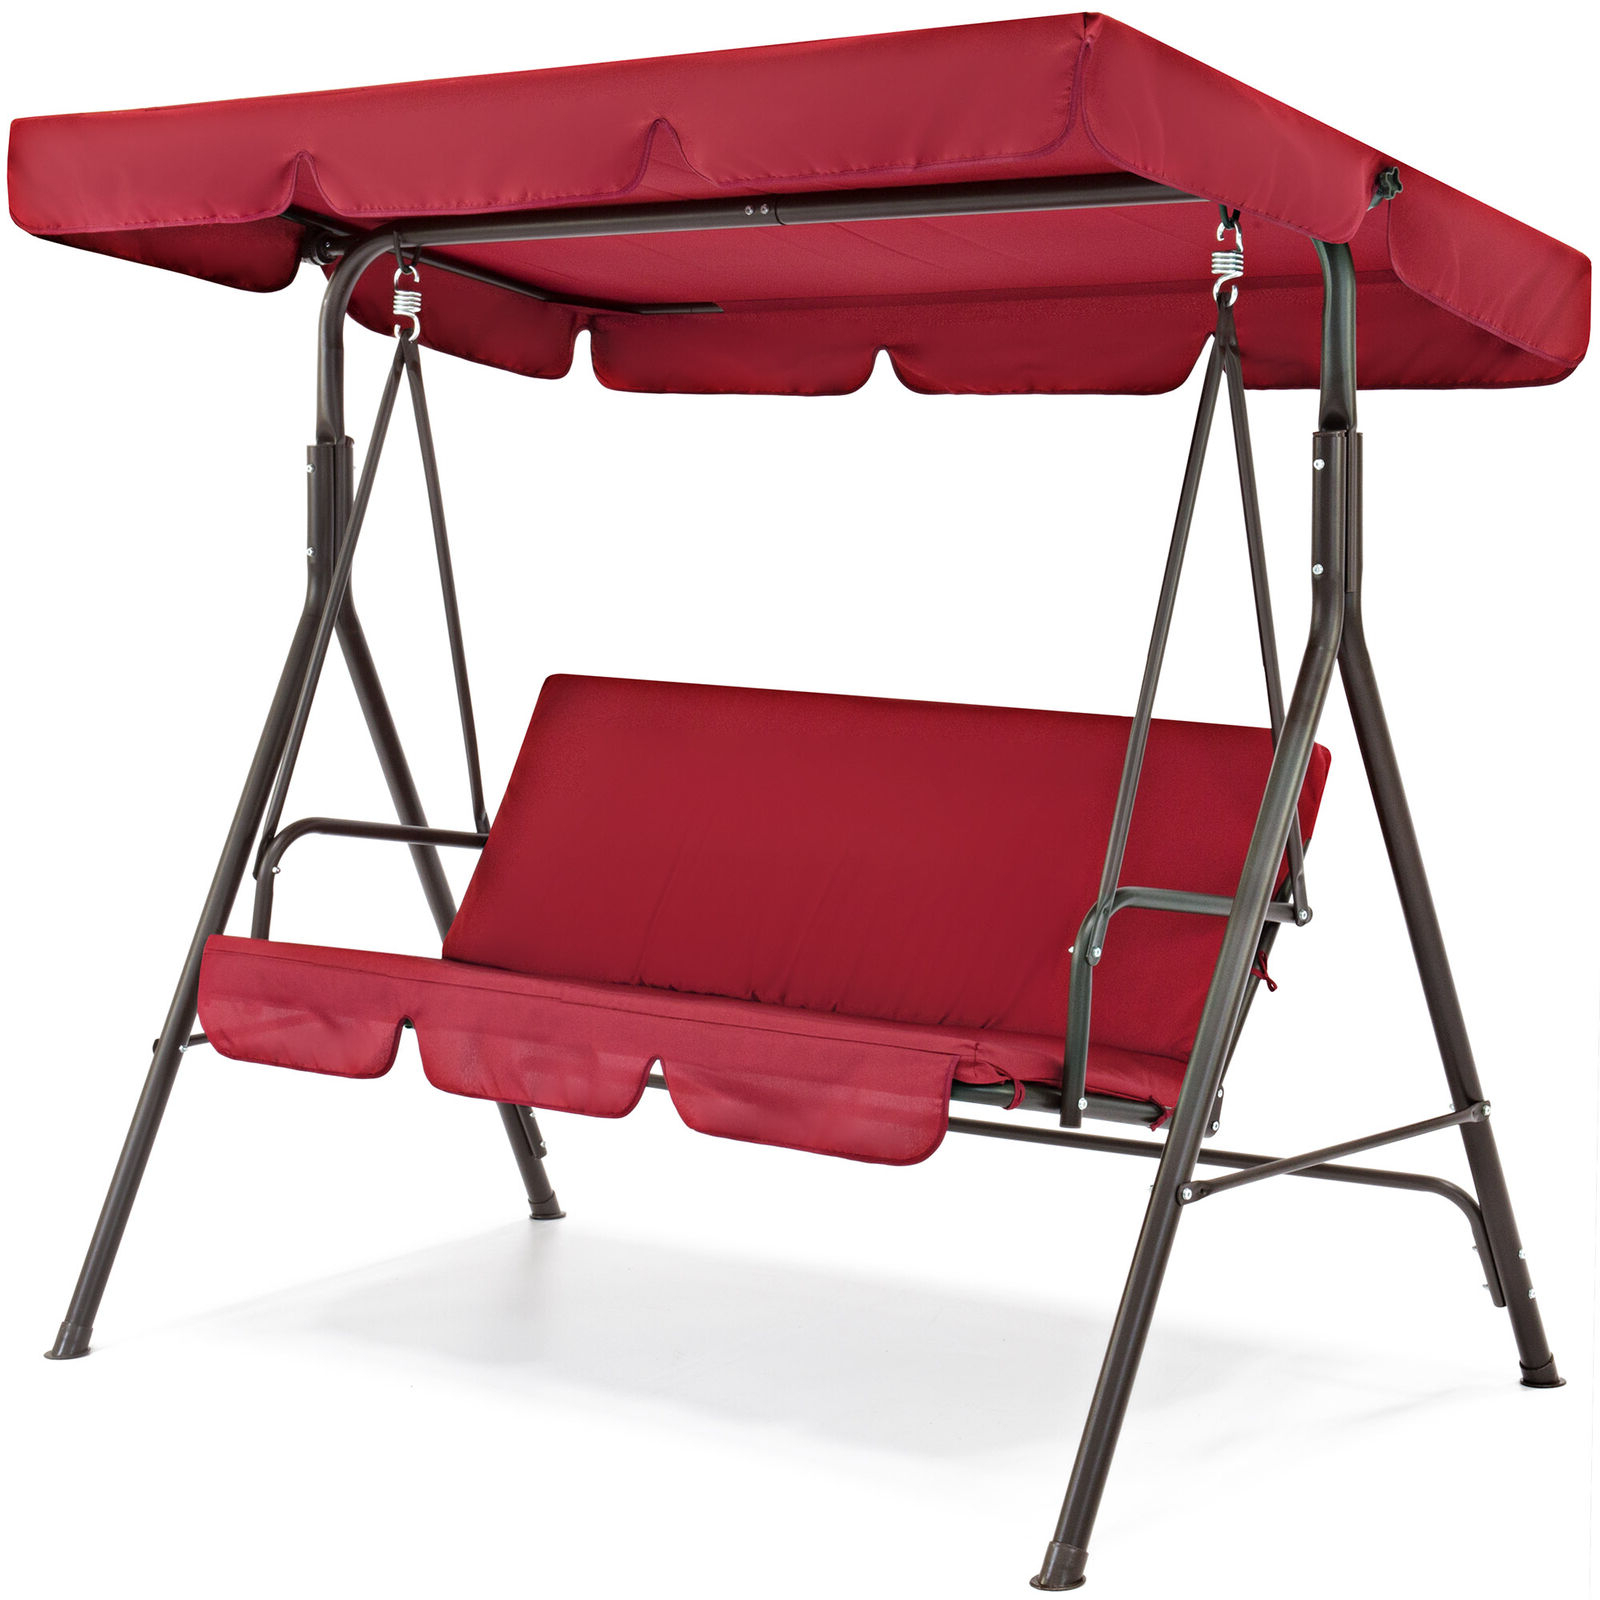 2 Person Outdoor Convertible Canopy Swing Gliders With Removable Cushions Beige Inside Popular Best Choice Products Outdoor 2 Person Patio Canopy Swing – Burgundy (View 4 of 25)